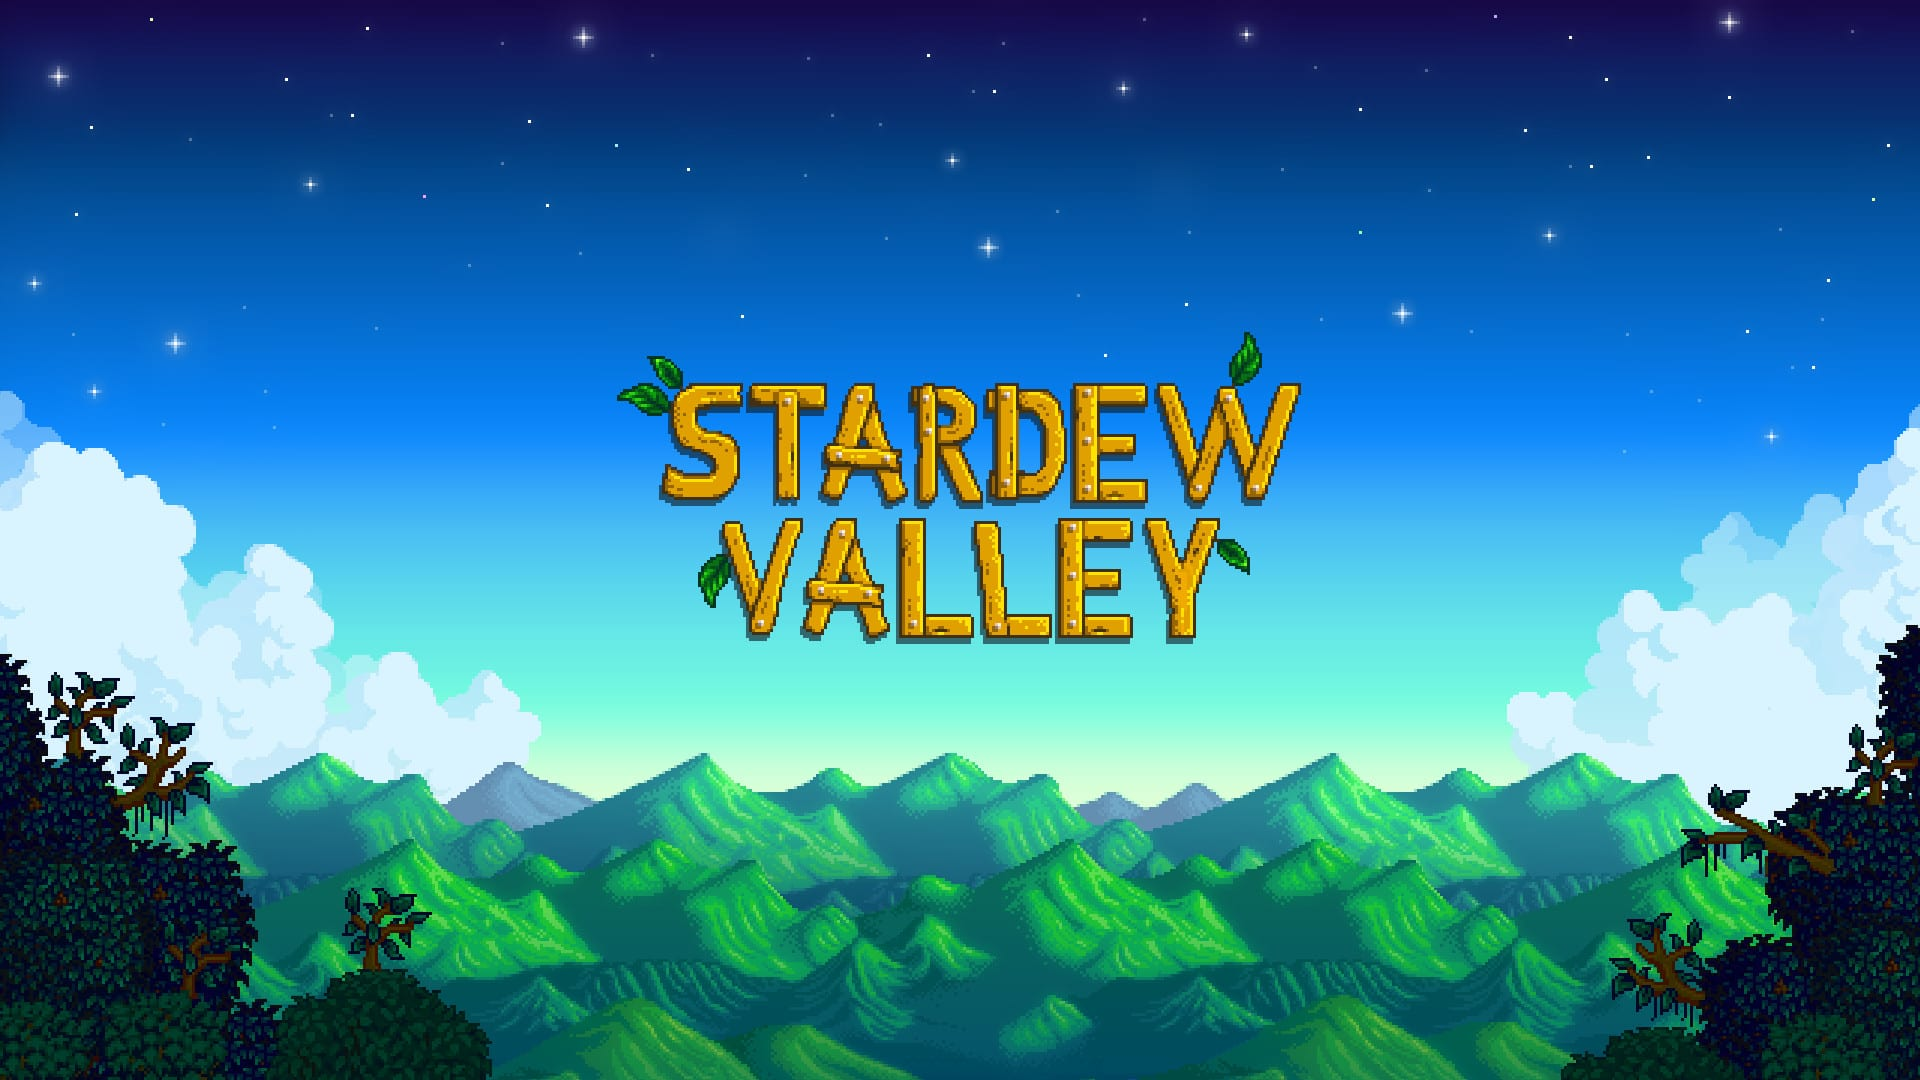 Stardew Valley will officially arrive on the Playstation 4 and Xbox One in December